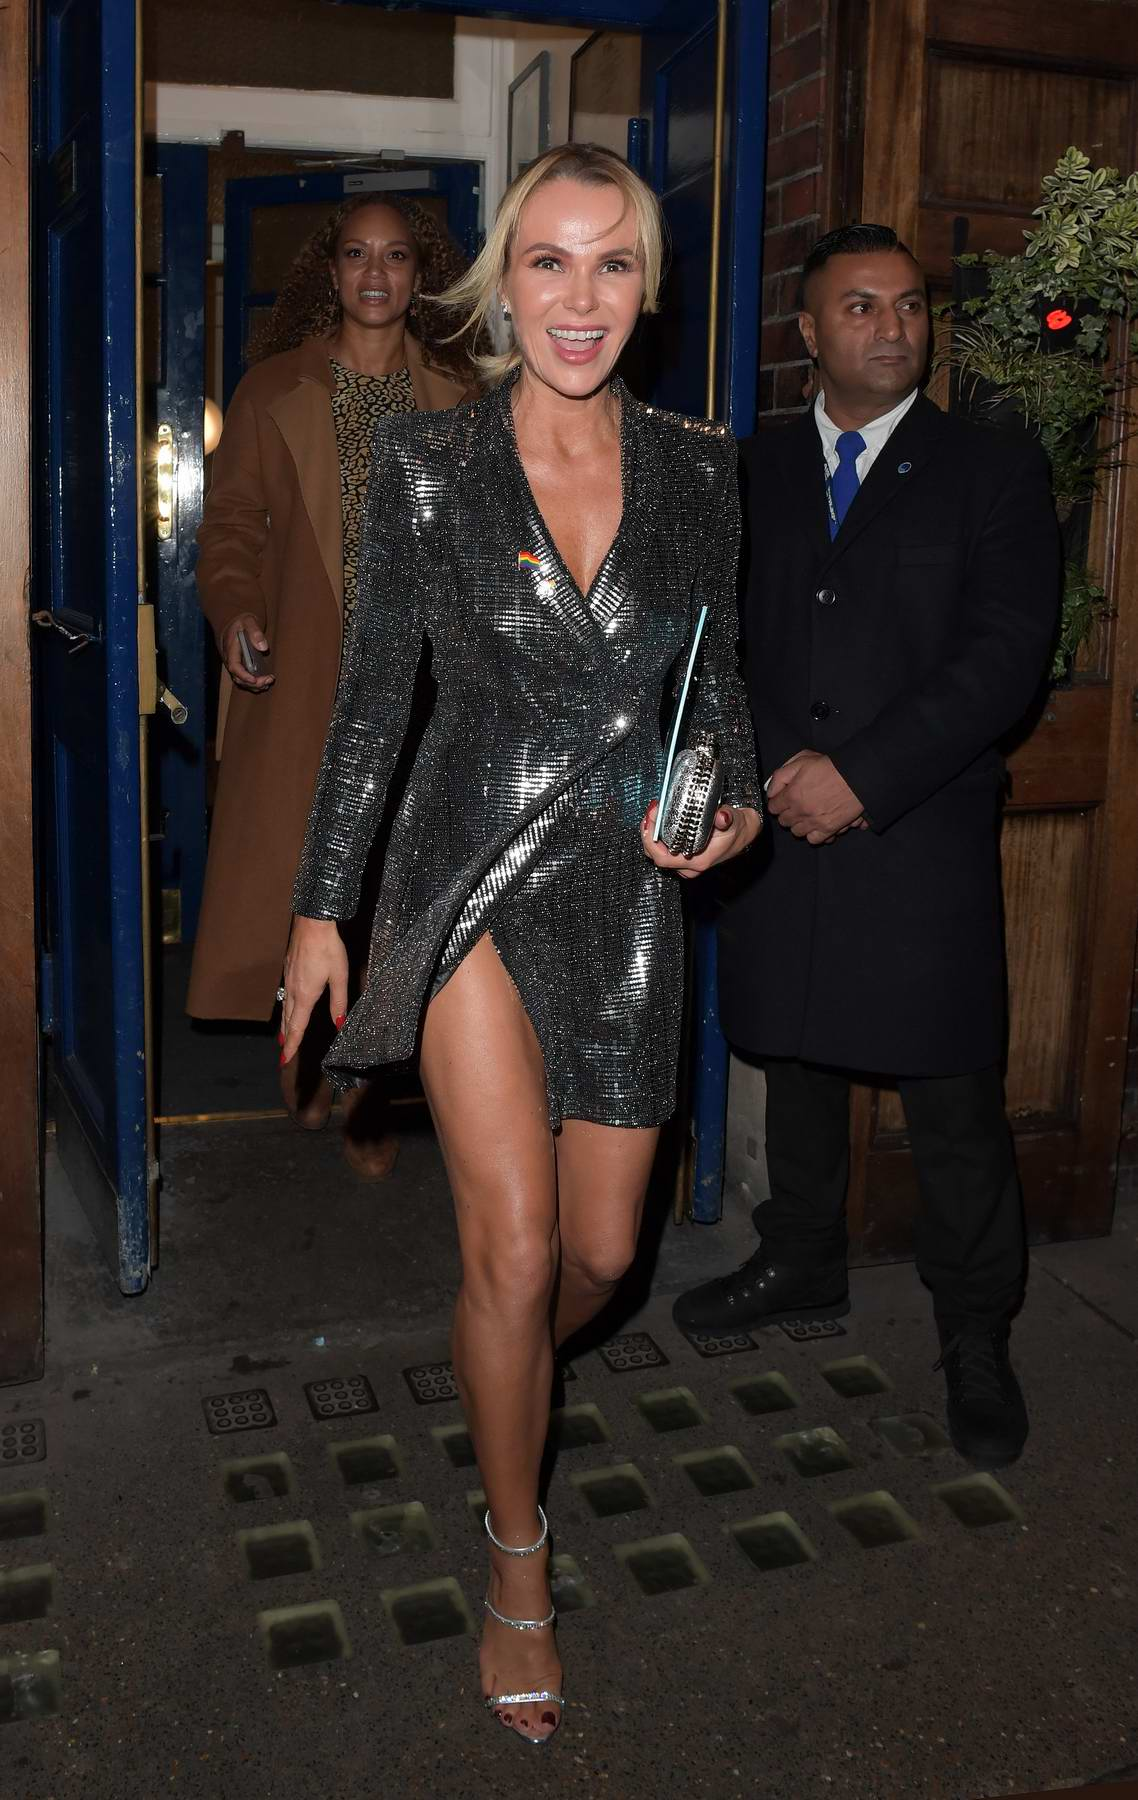 Amanda Holden leaving the theatre after the 'Everybody's Talking About Jamie' musical in London